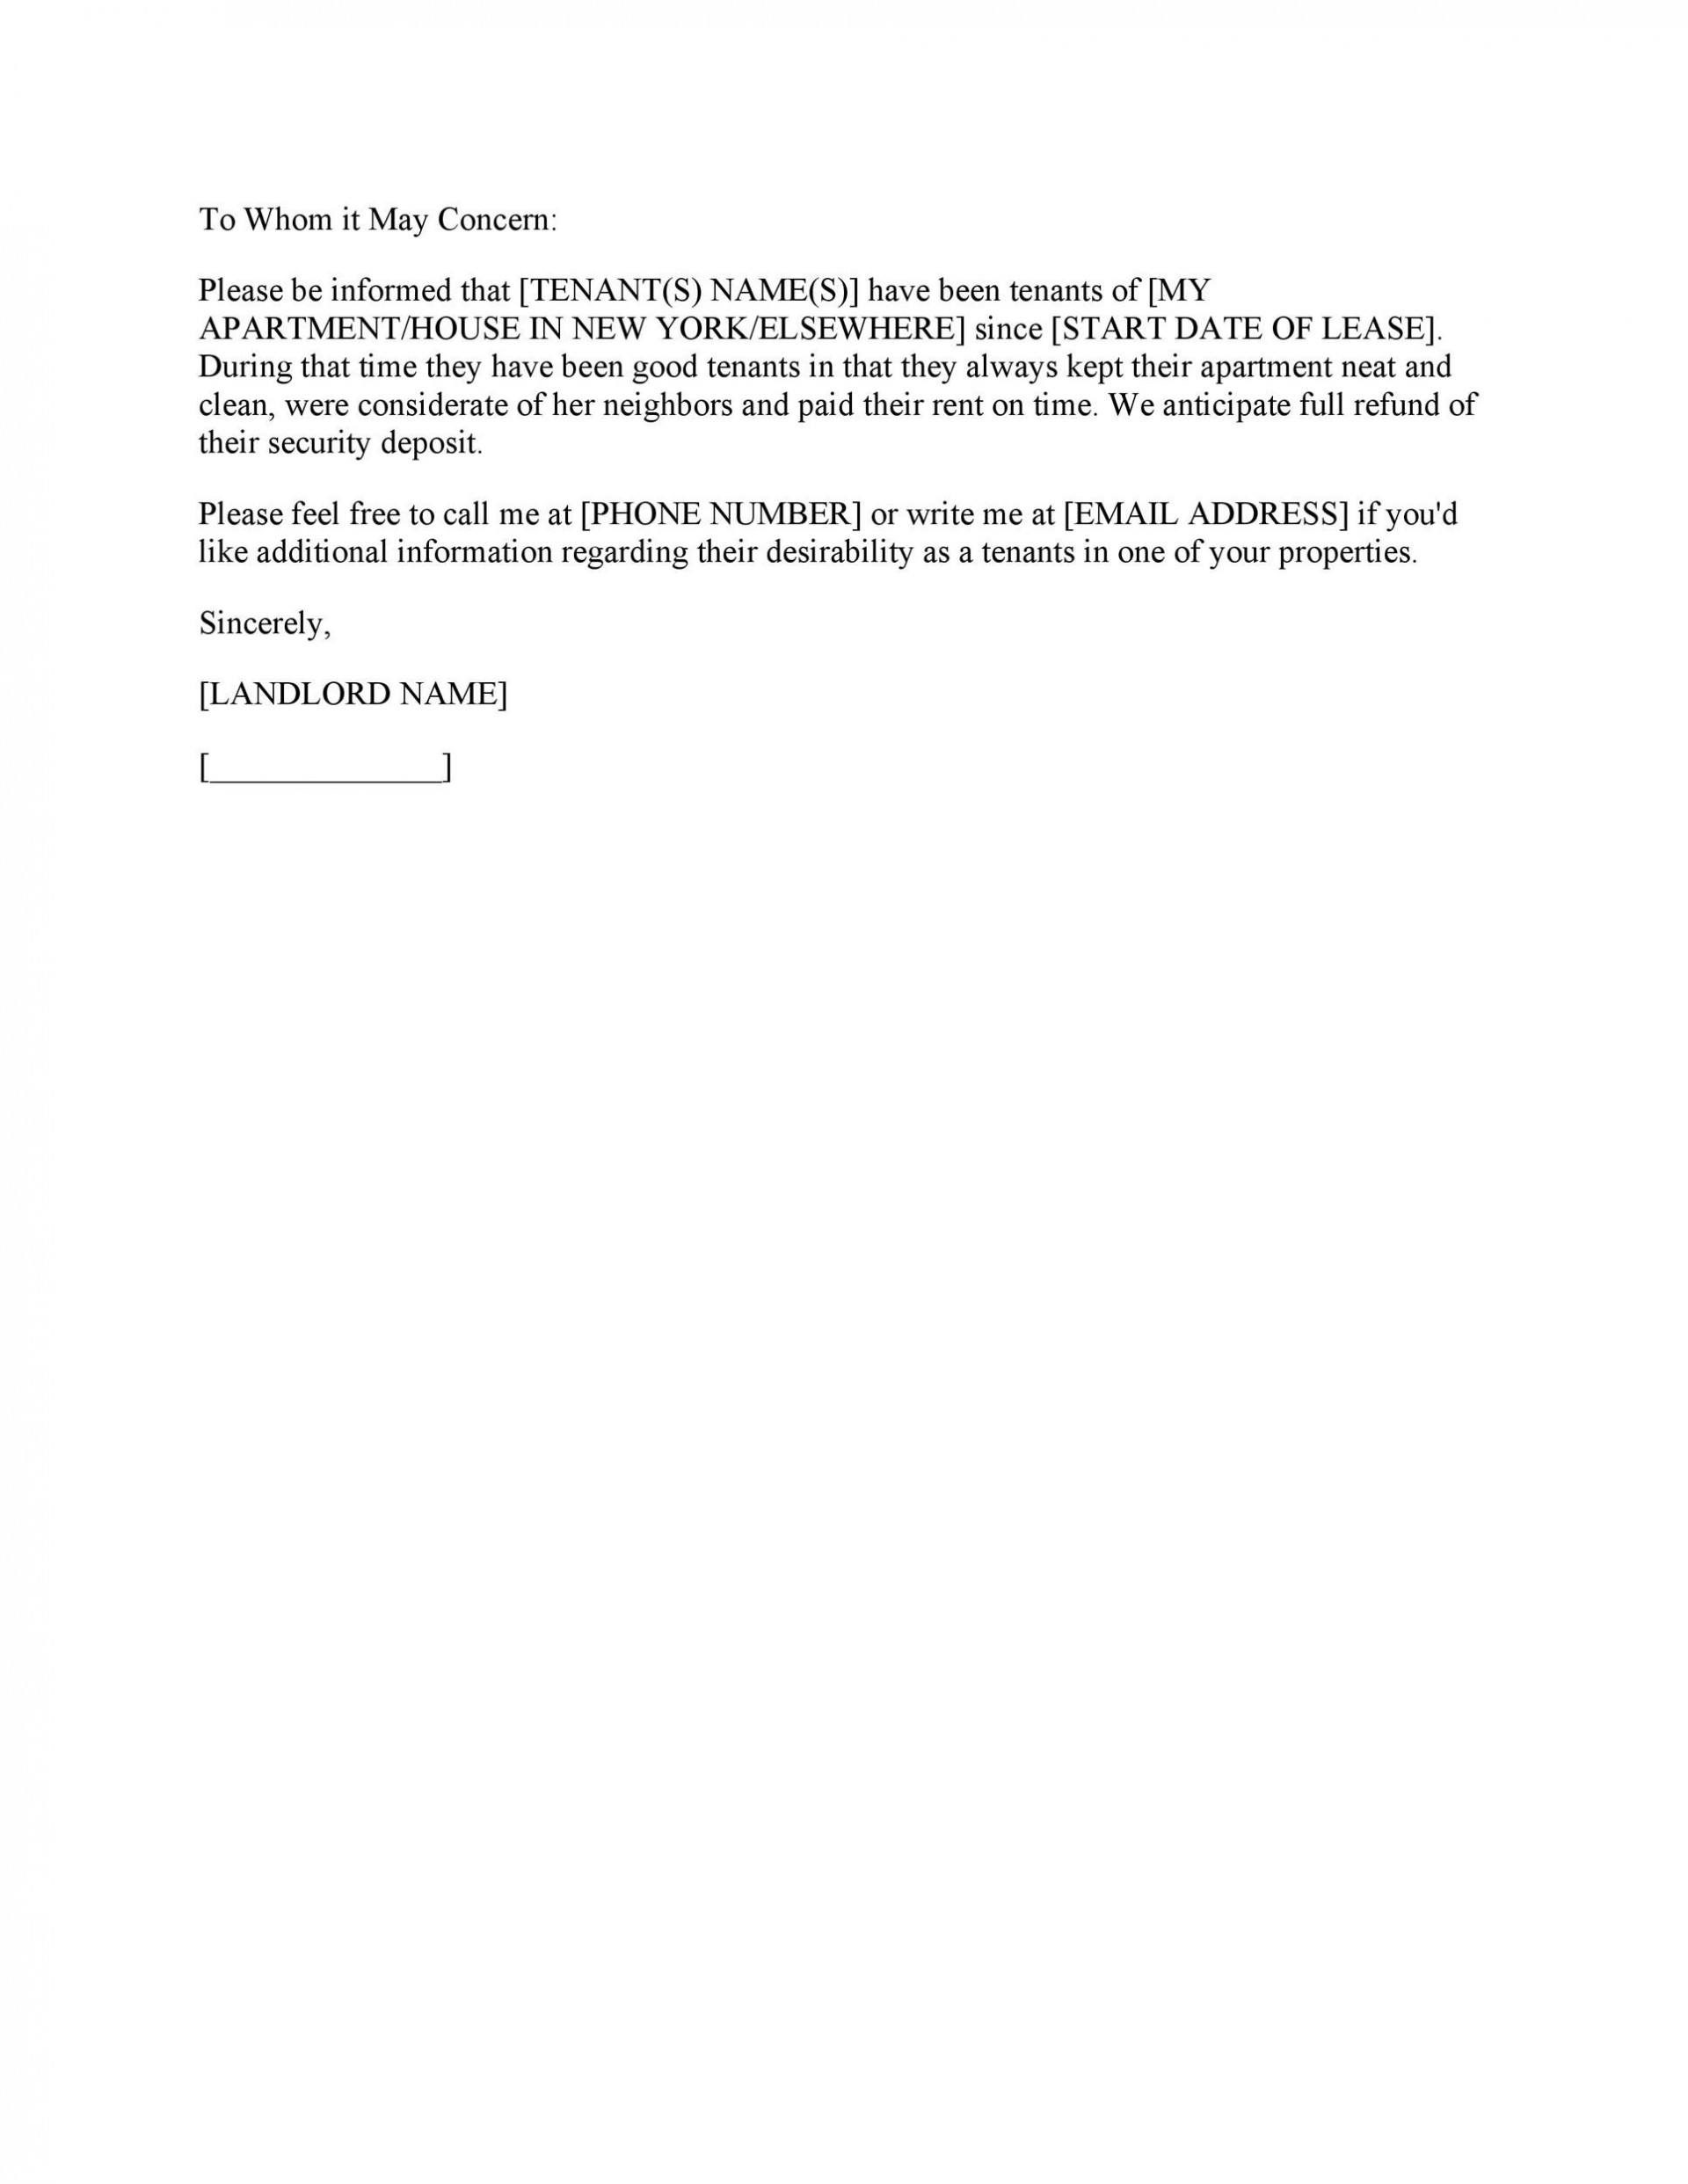 003 Unbelievable Free Reference Letter Template For Tenant Photo 1920